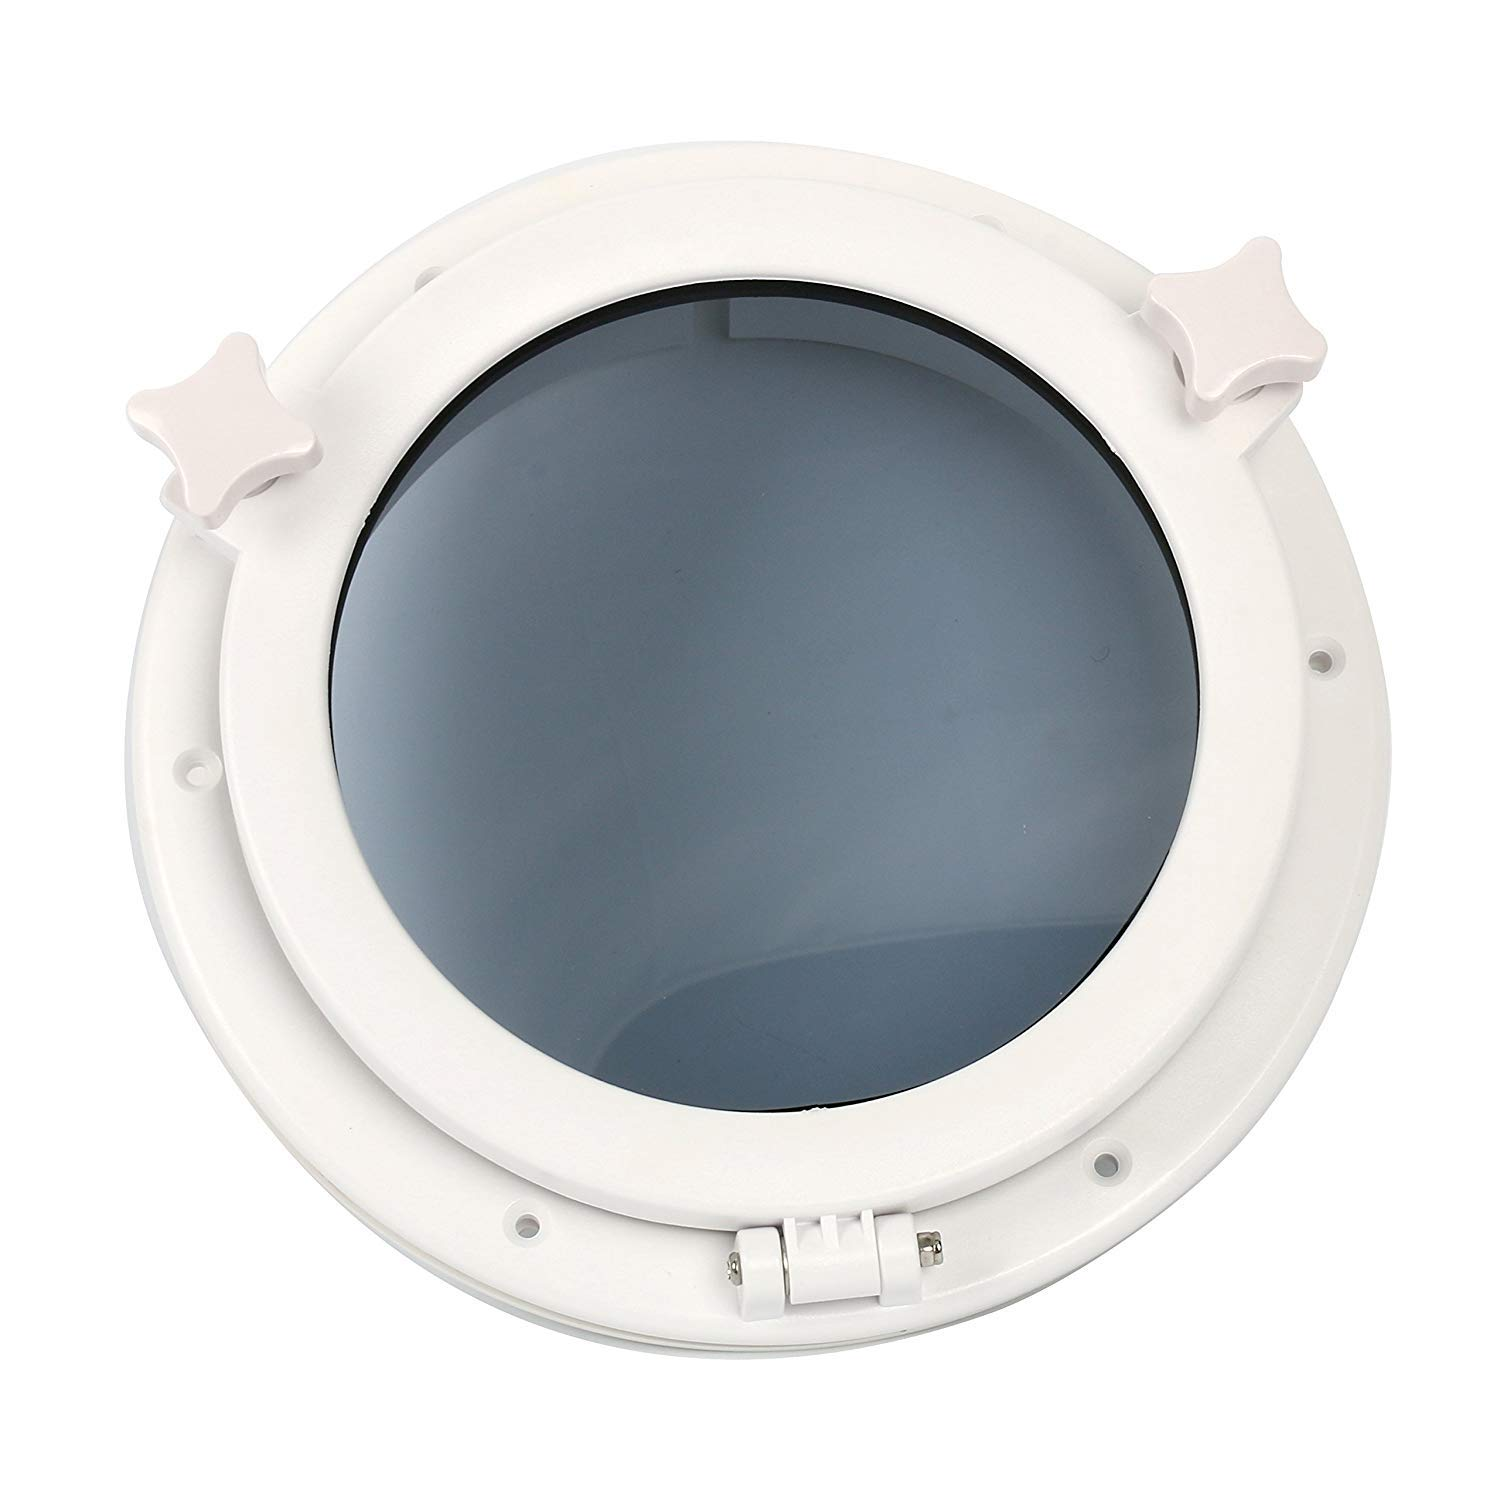 """Amarine Made Boat Yacht Round Opening Portlight Porthole 10"""" Replacement Window Port Hole - ABS, Tempered Glass -Marine/Boat/rv Portlight Hatch, Color: White, Black"""